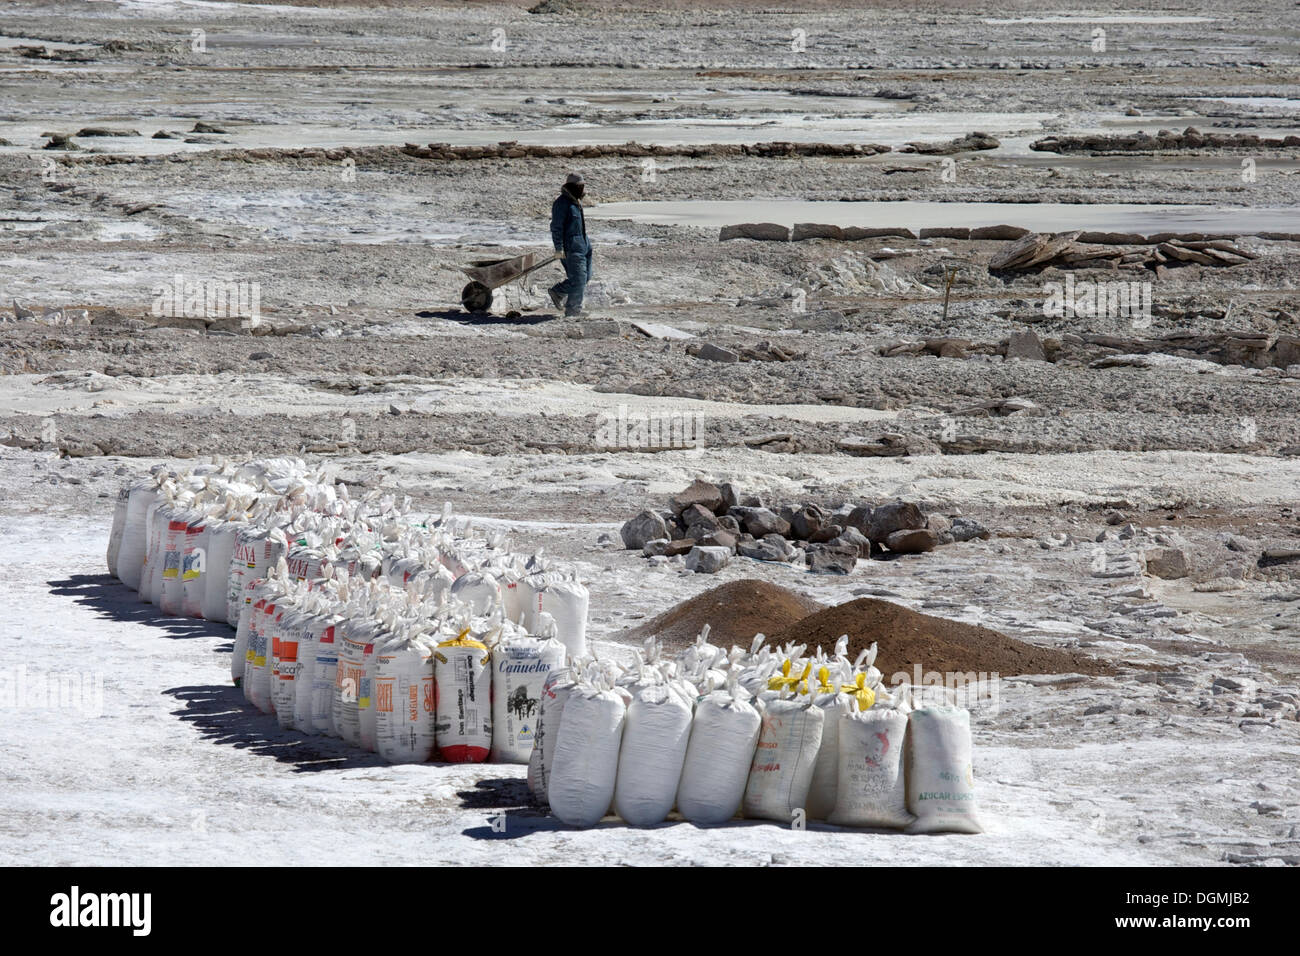 Salt worker with a wheelbarrow, flour sacks packed with salt at a salt lake, Altiplano, Potosi, southern Bolivia, South America - Stock Image